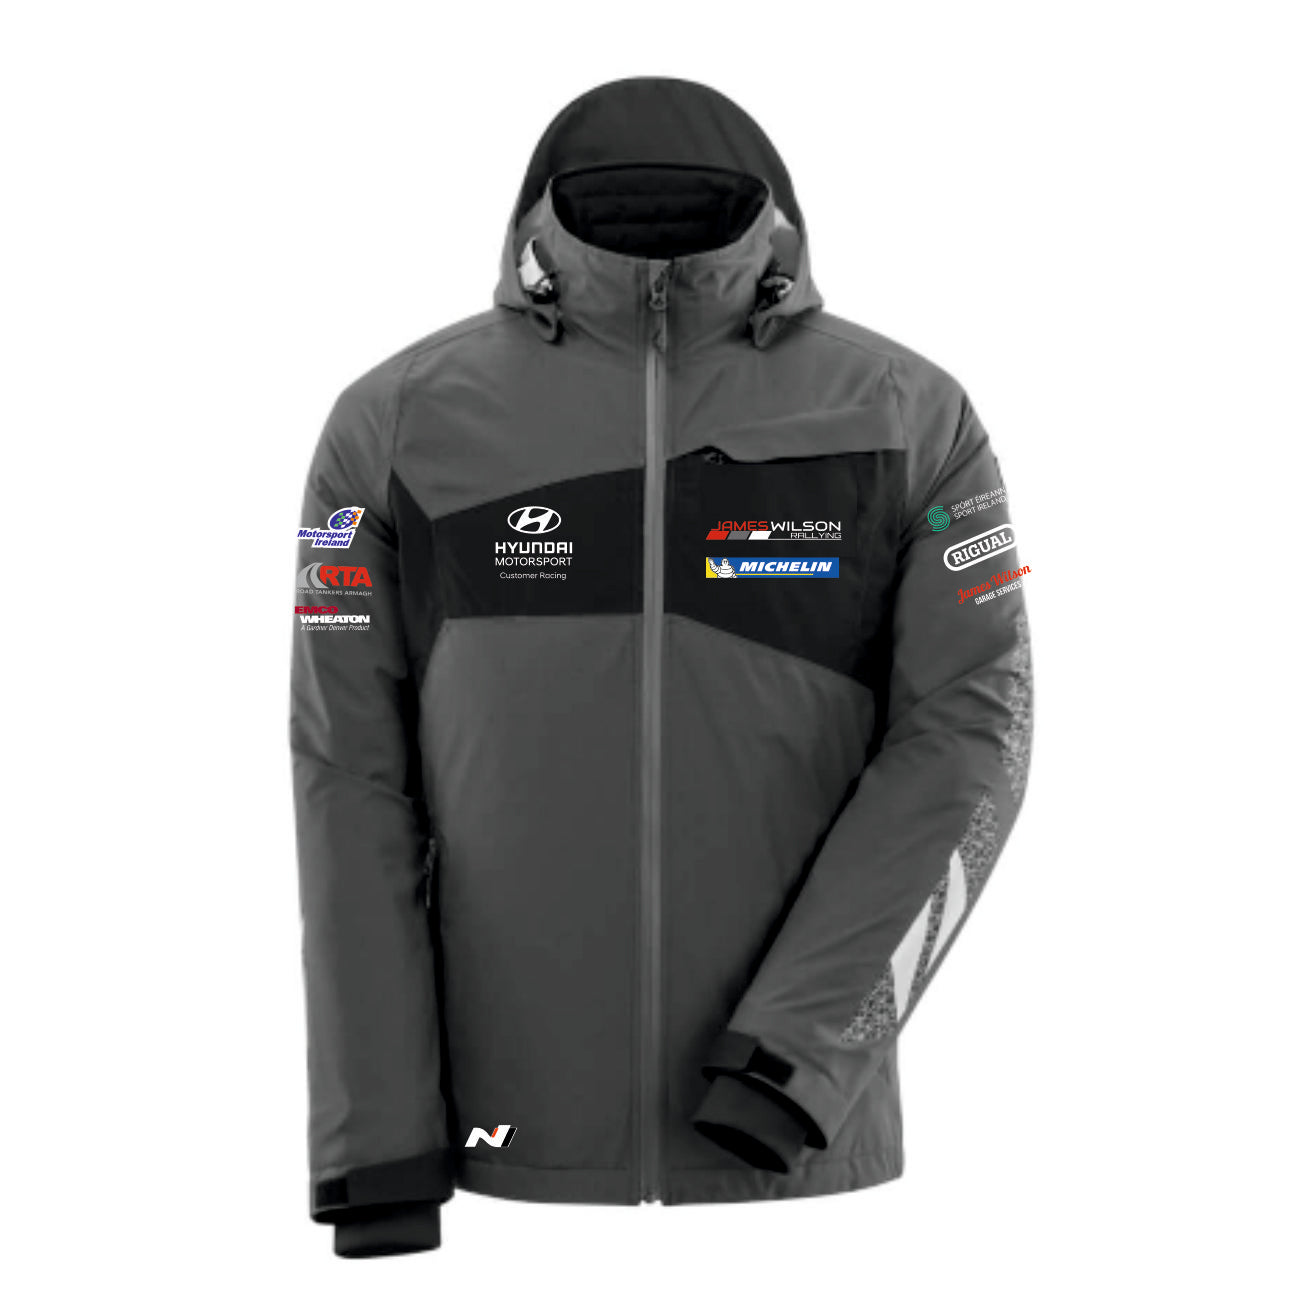 James Wilson Rallying Jacket